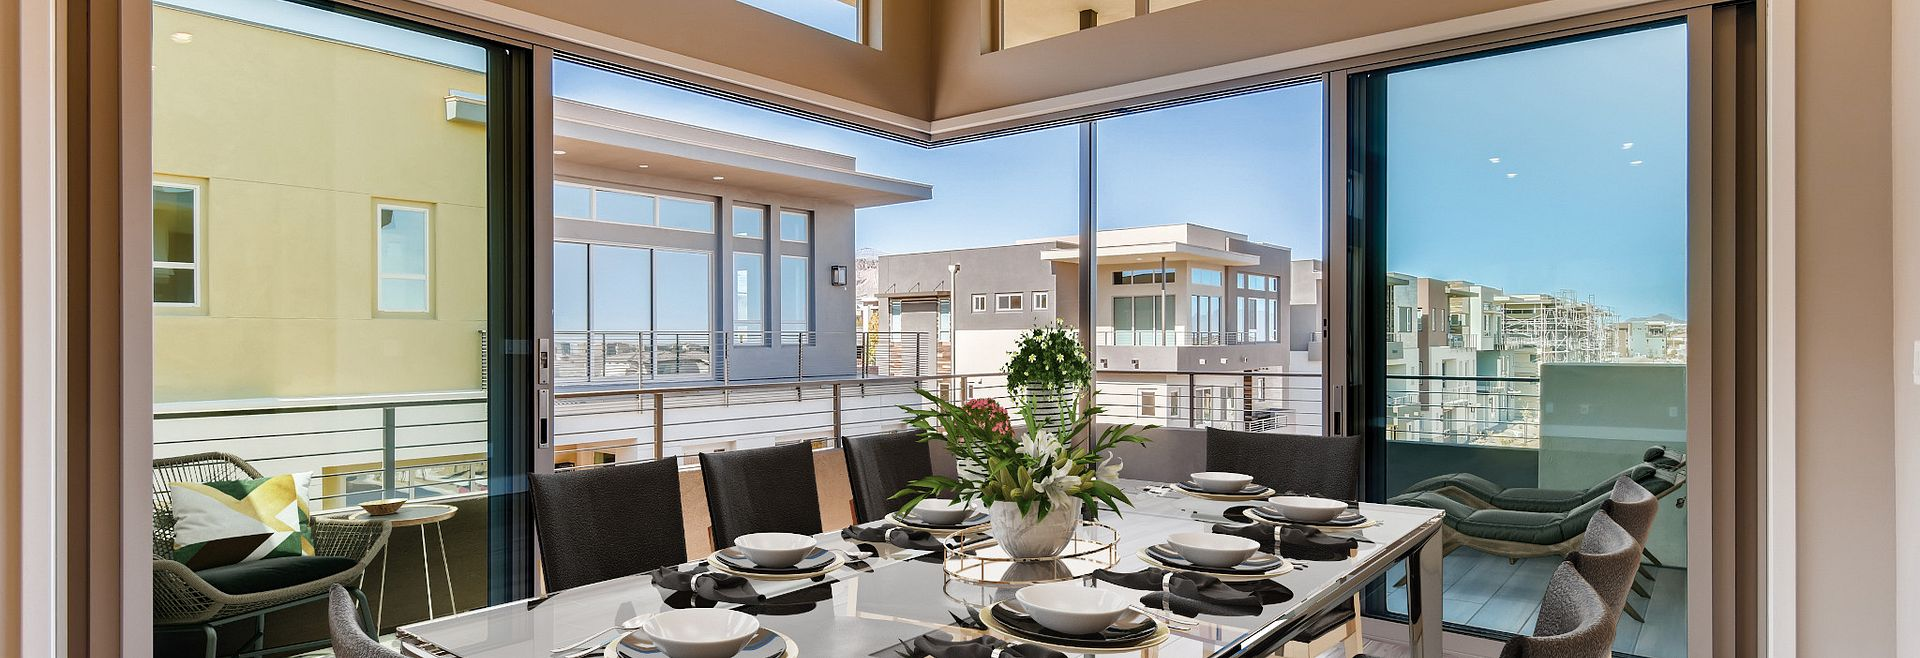 Trilogy Summerlin Apex Dining Room